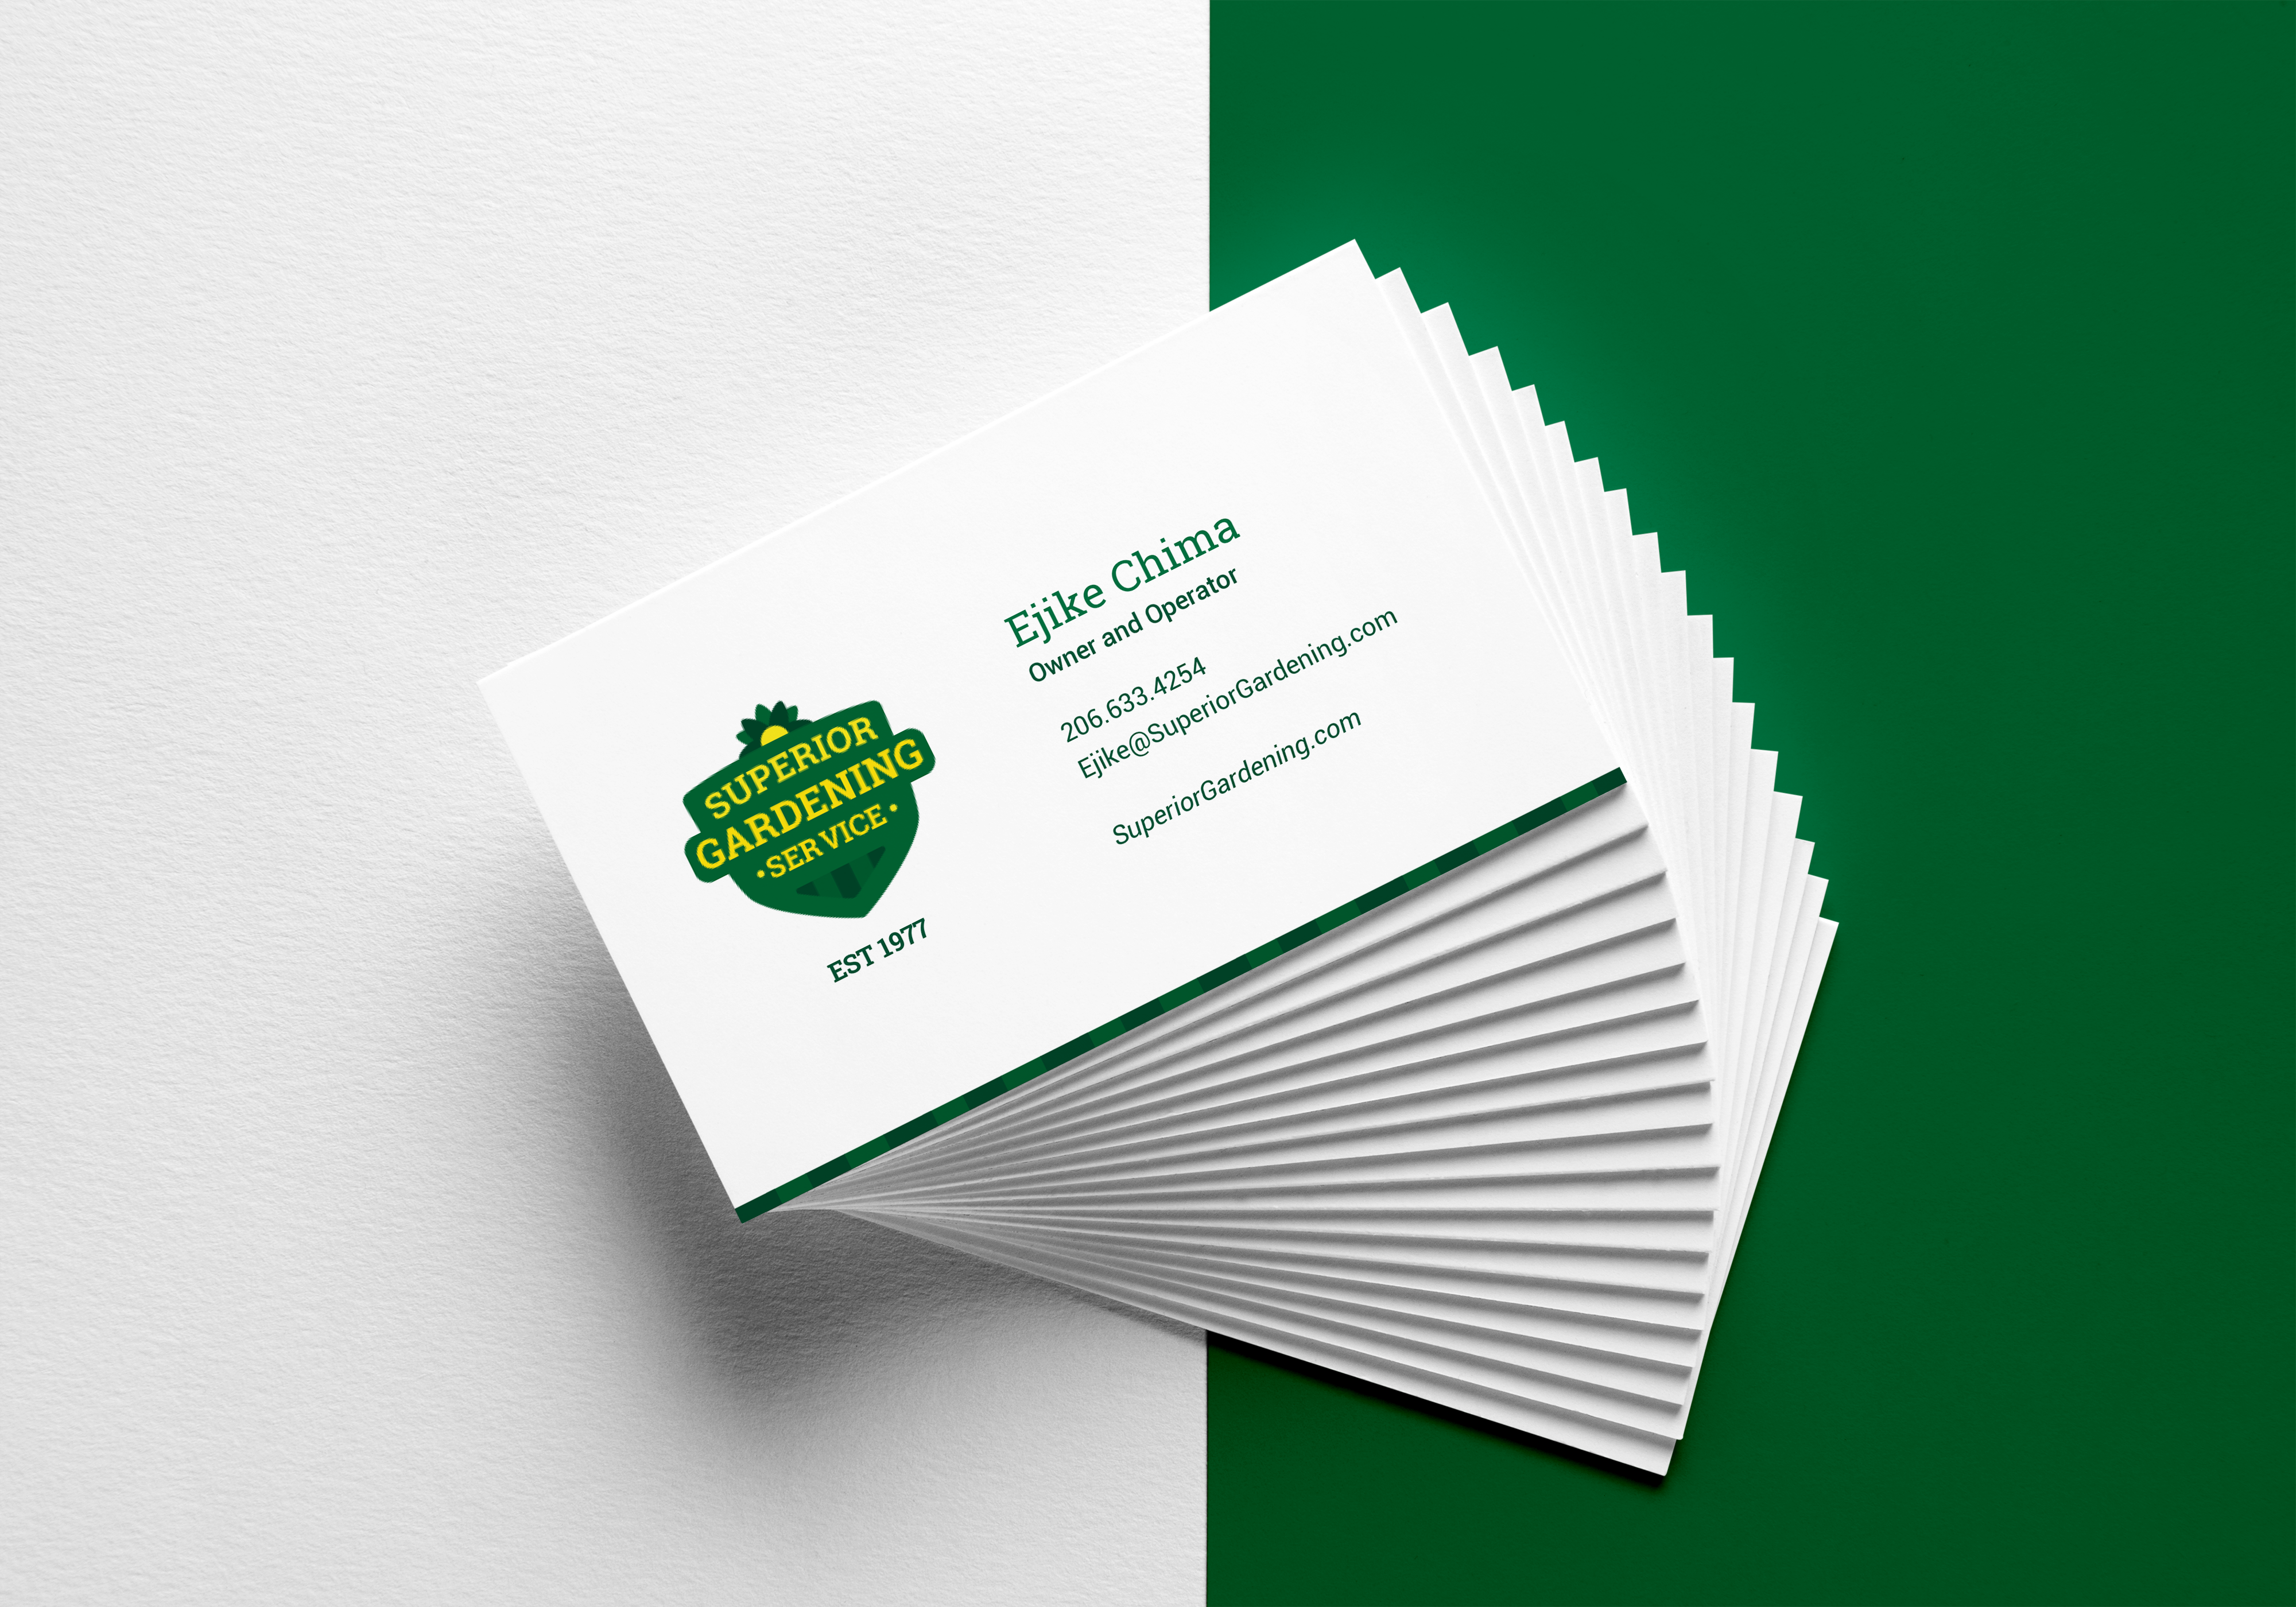 Udie chima everfave sgs business card magicingreecefo Image collections